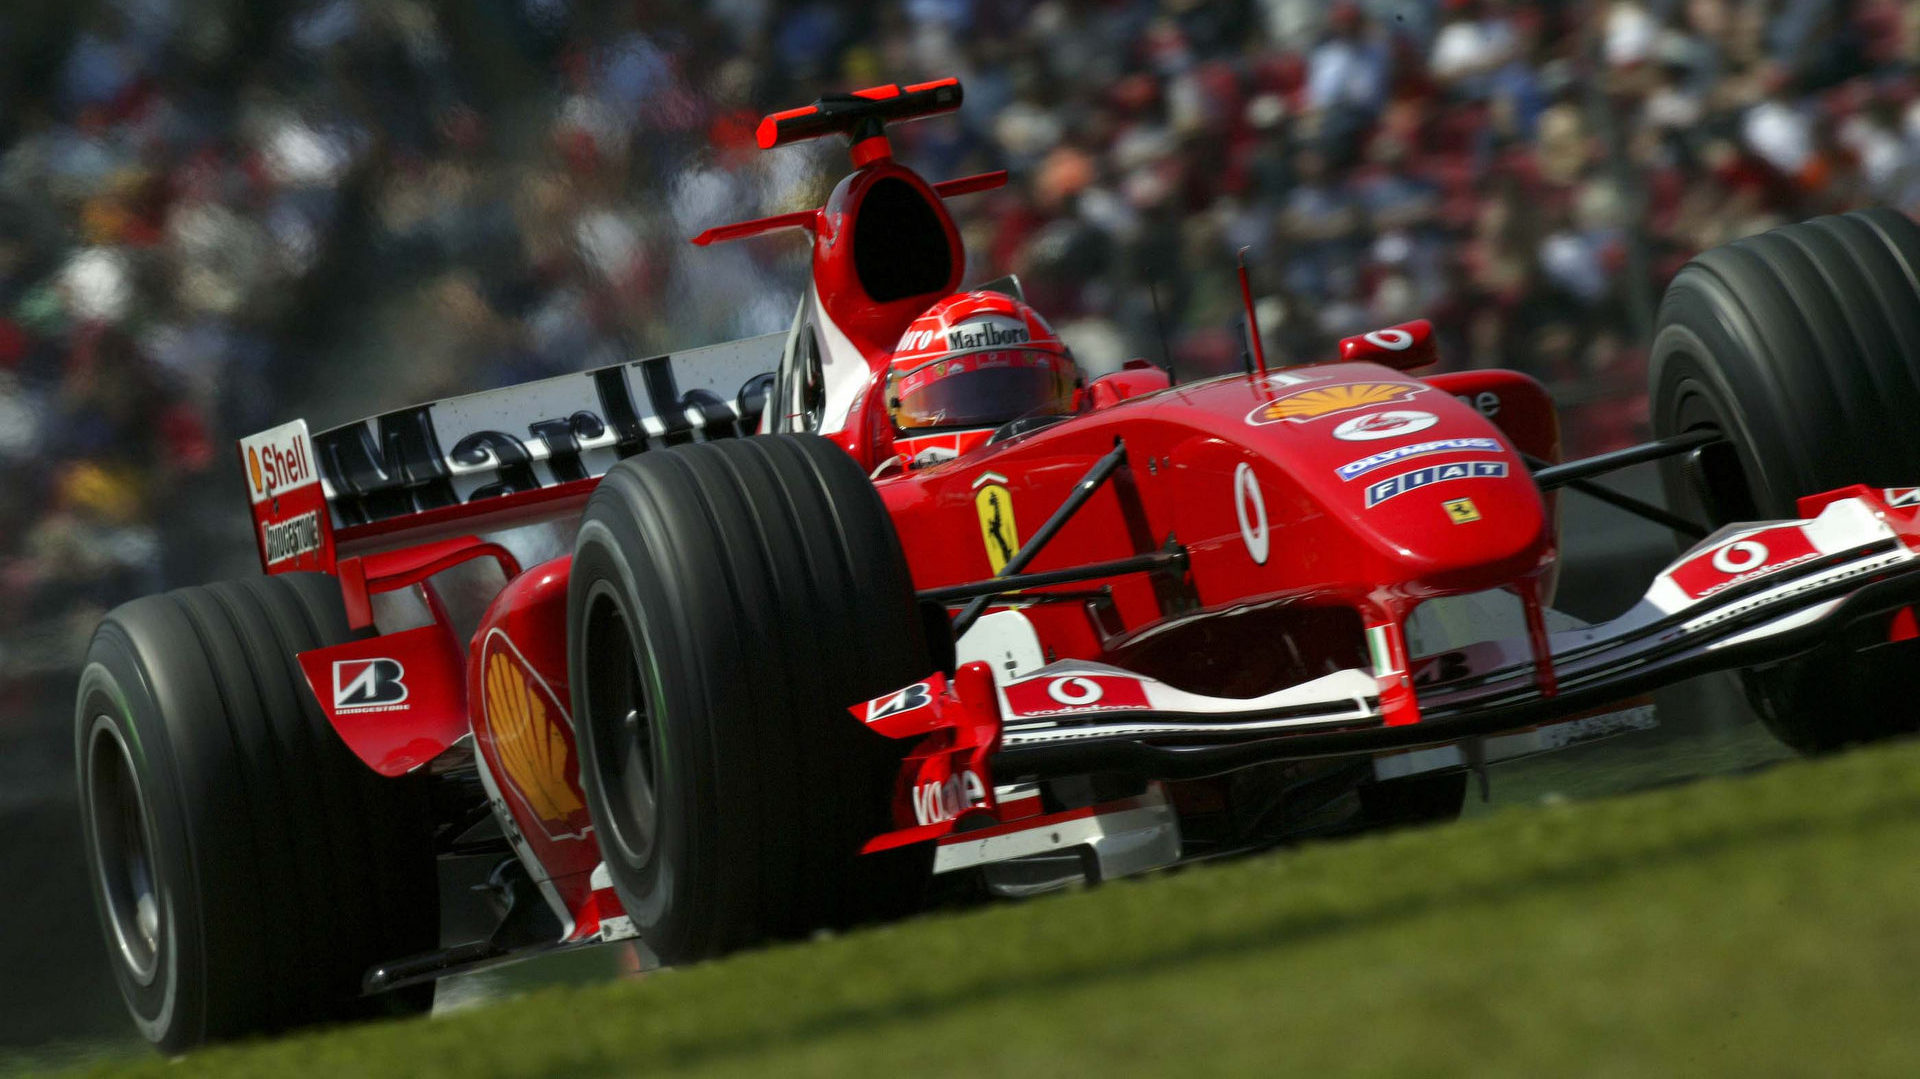 HD Wallpapers 2004 Formula 1 Grand Prix of San Marino | F1 ...